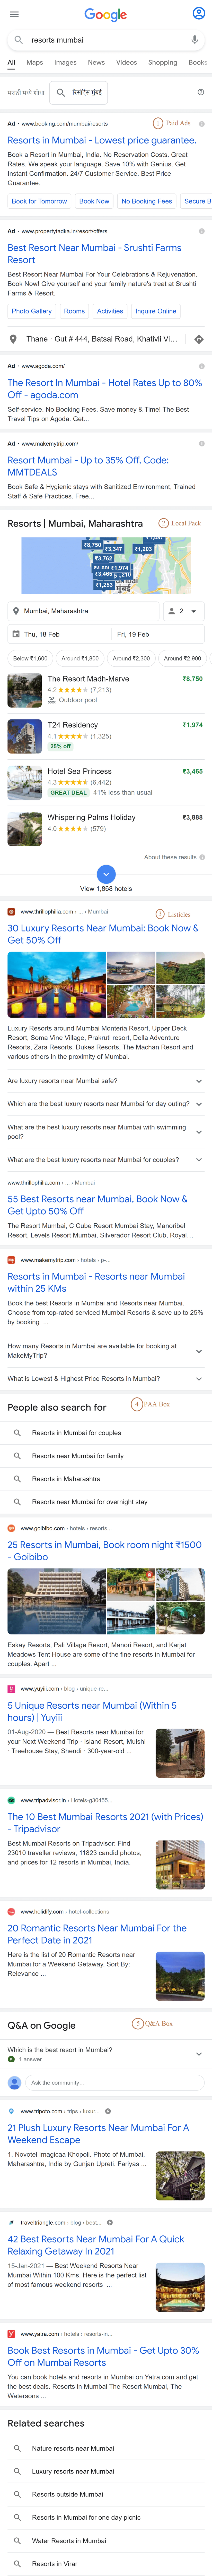 SERP challenges for resorts